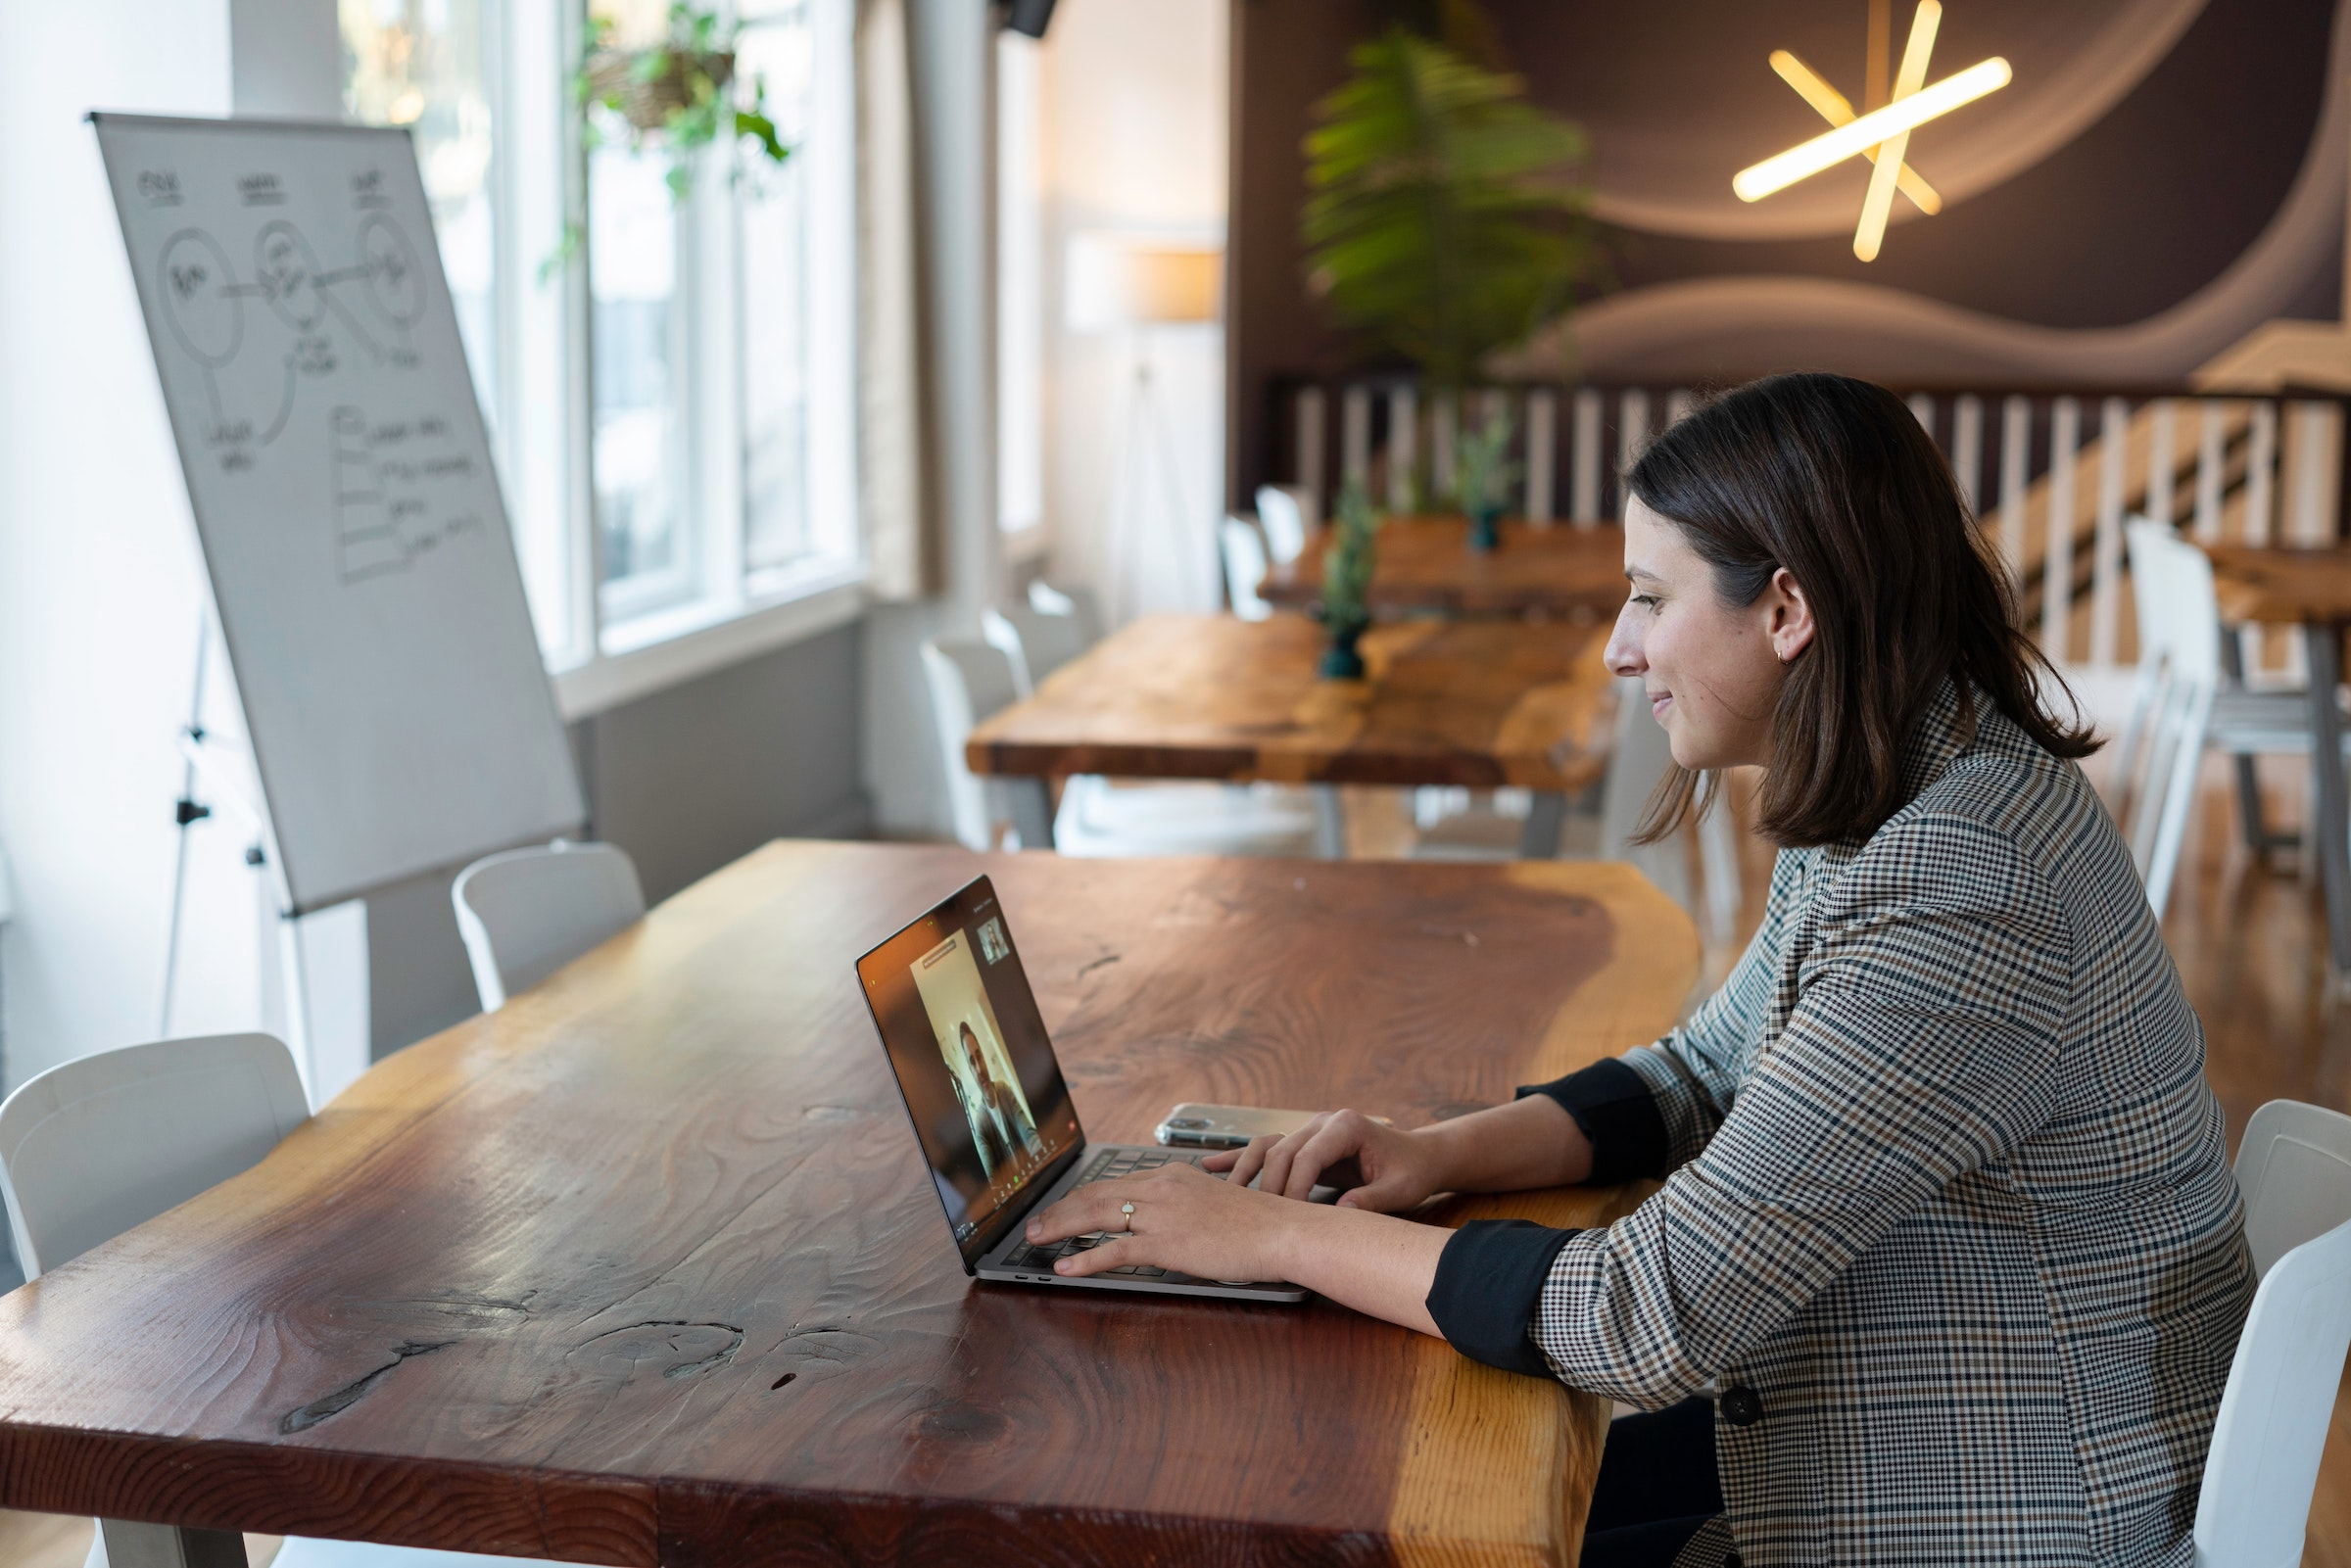 woman participating in live televideo interviews on laptop in an office